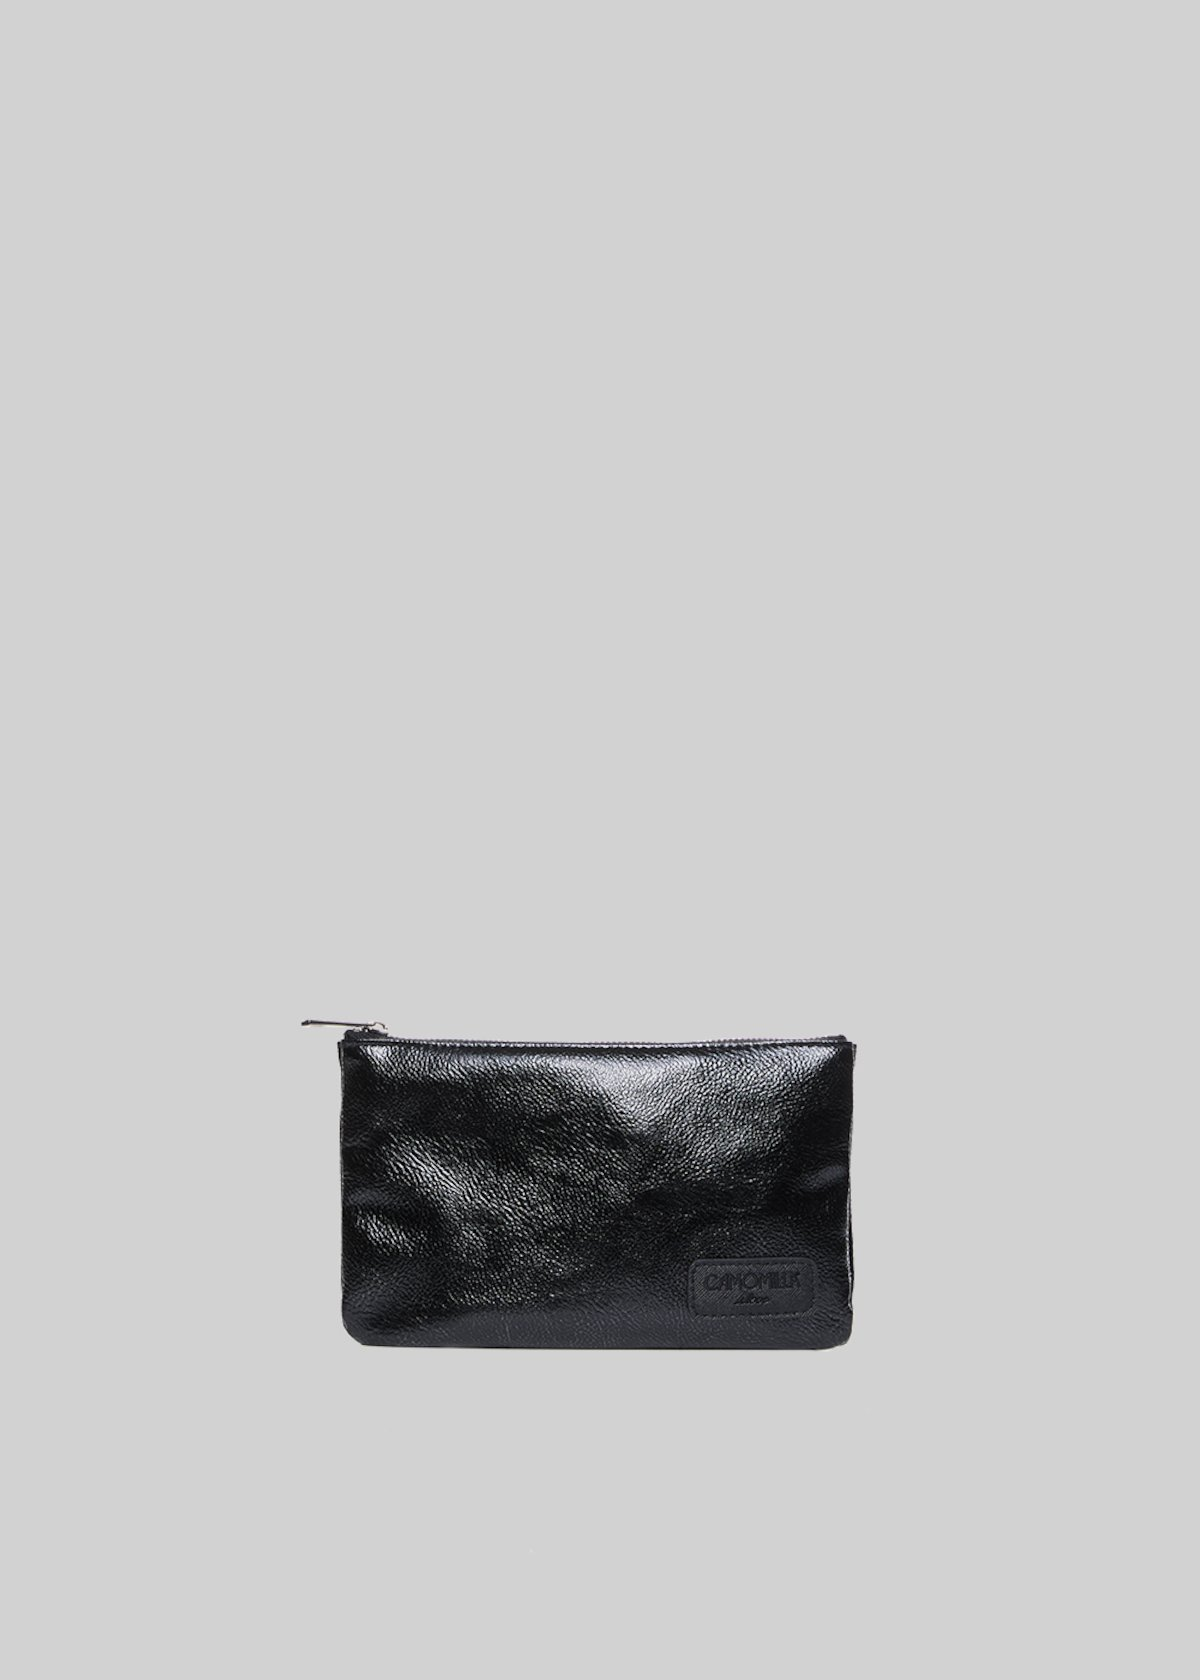 Tongameta clutch bag in metal faux leather with shoulder strap